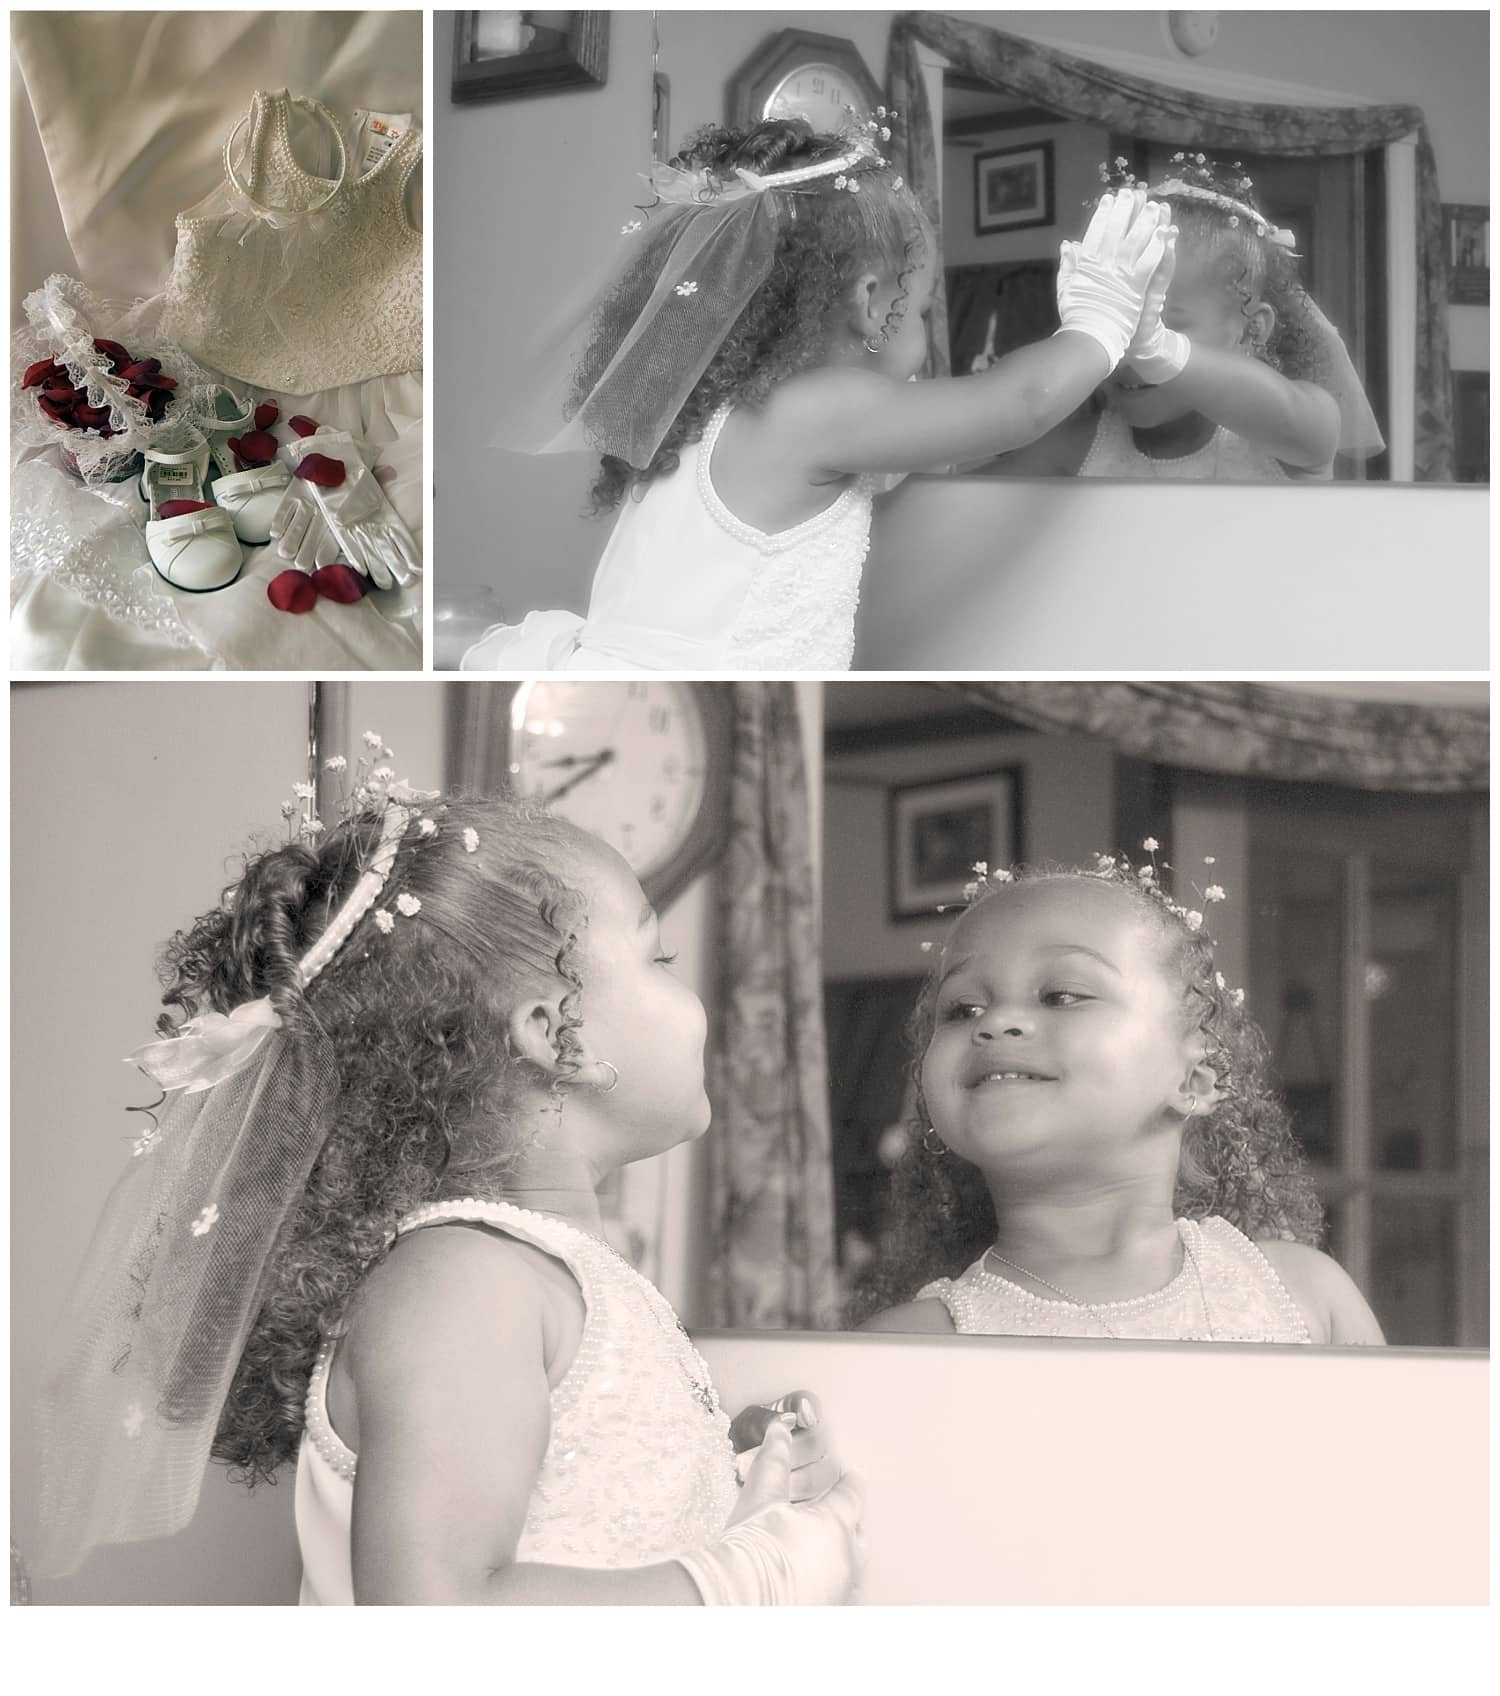 The flower girl smiles at herself in a mirror during bridal prep.